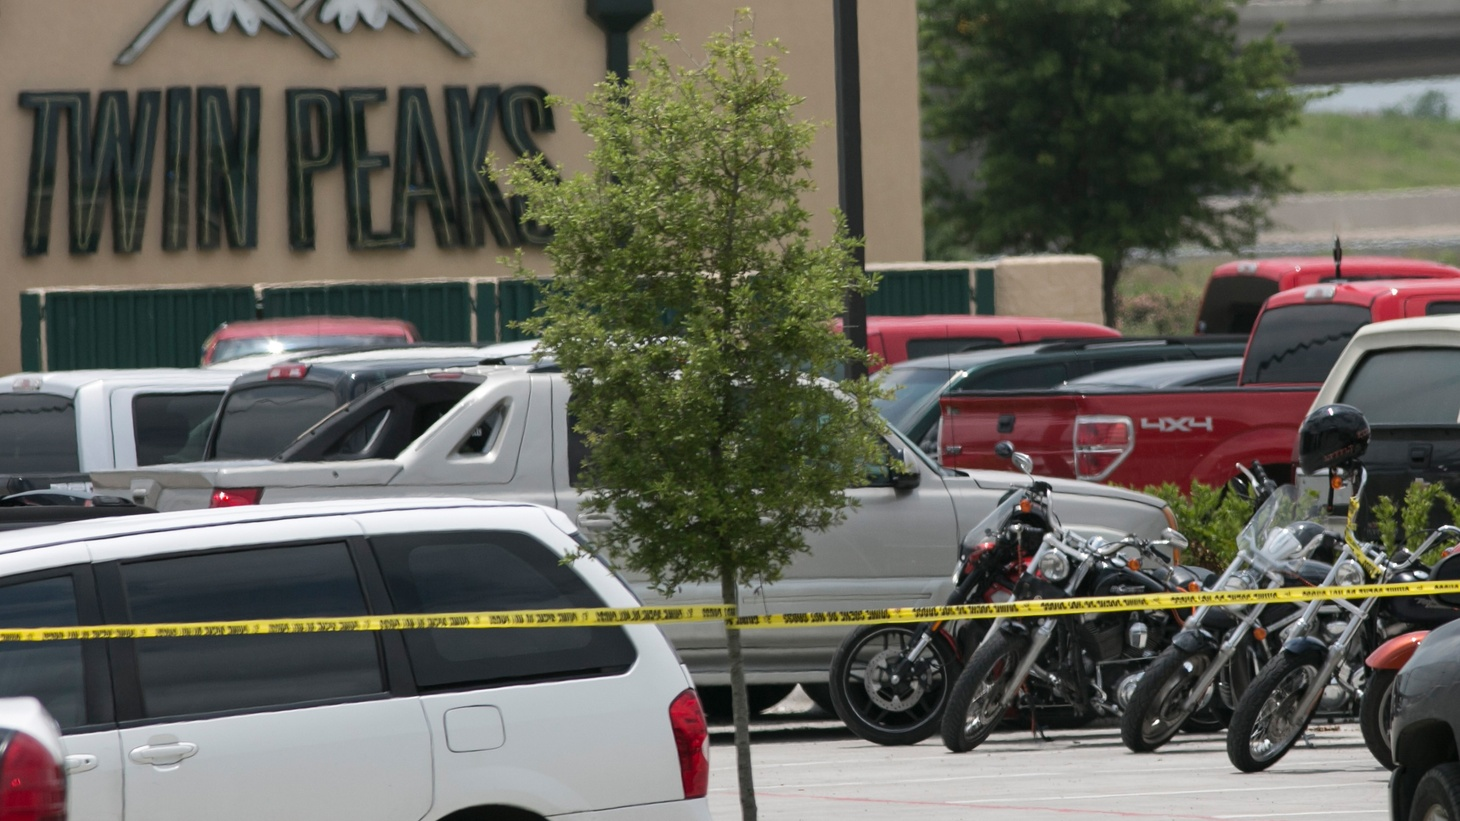 Nine people were killed and 18 injured in a shootout between rival motorcycle gangs in Waco, Texas on Sunday. Police have made 170 arrests. We look at what started the fight and the state of biker gangs.